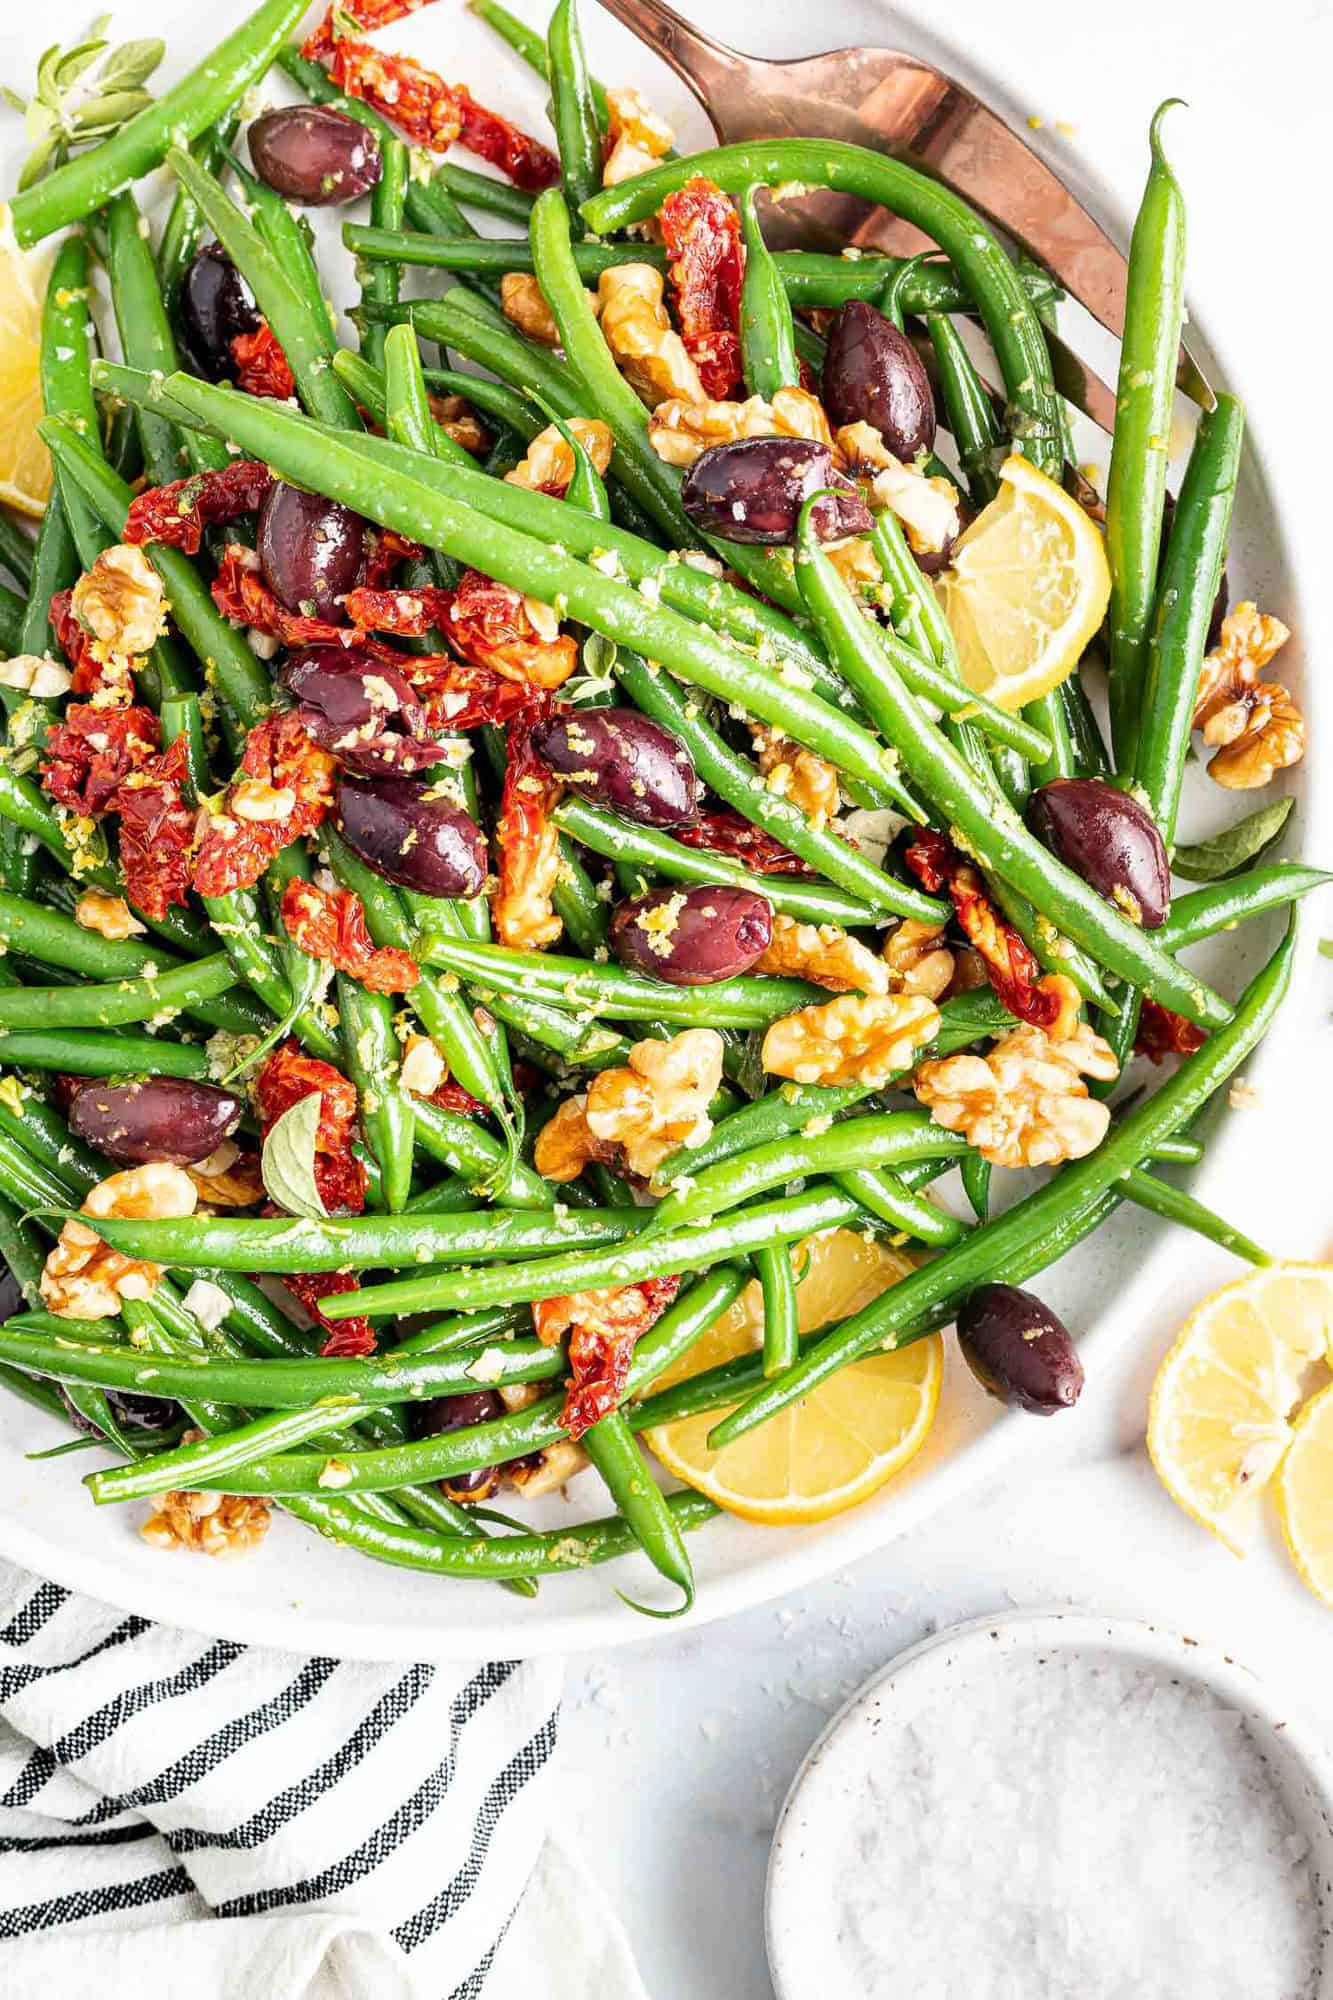 Green beans in a large white bowl with sun dried tomatoes, kalamata olives, and walnuts.